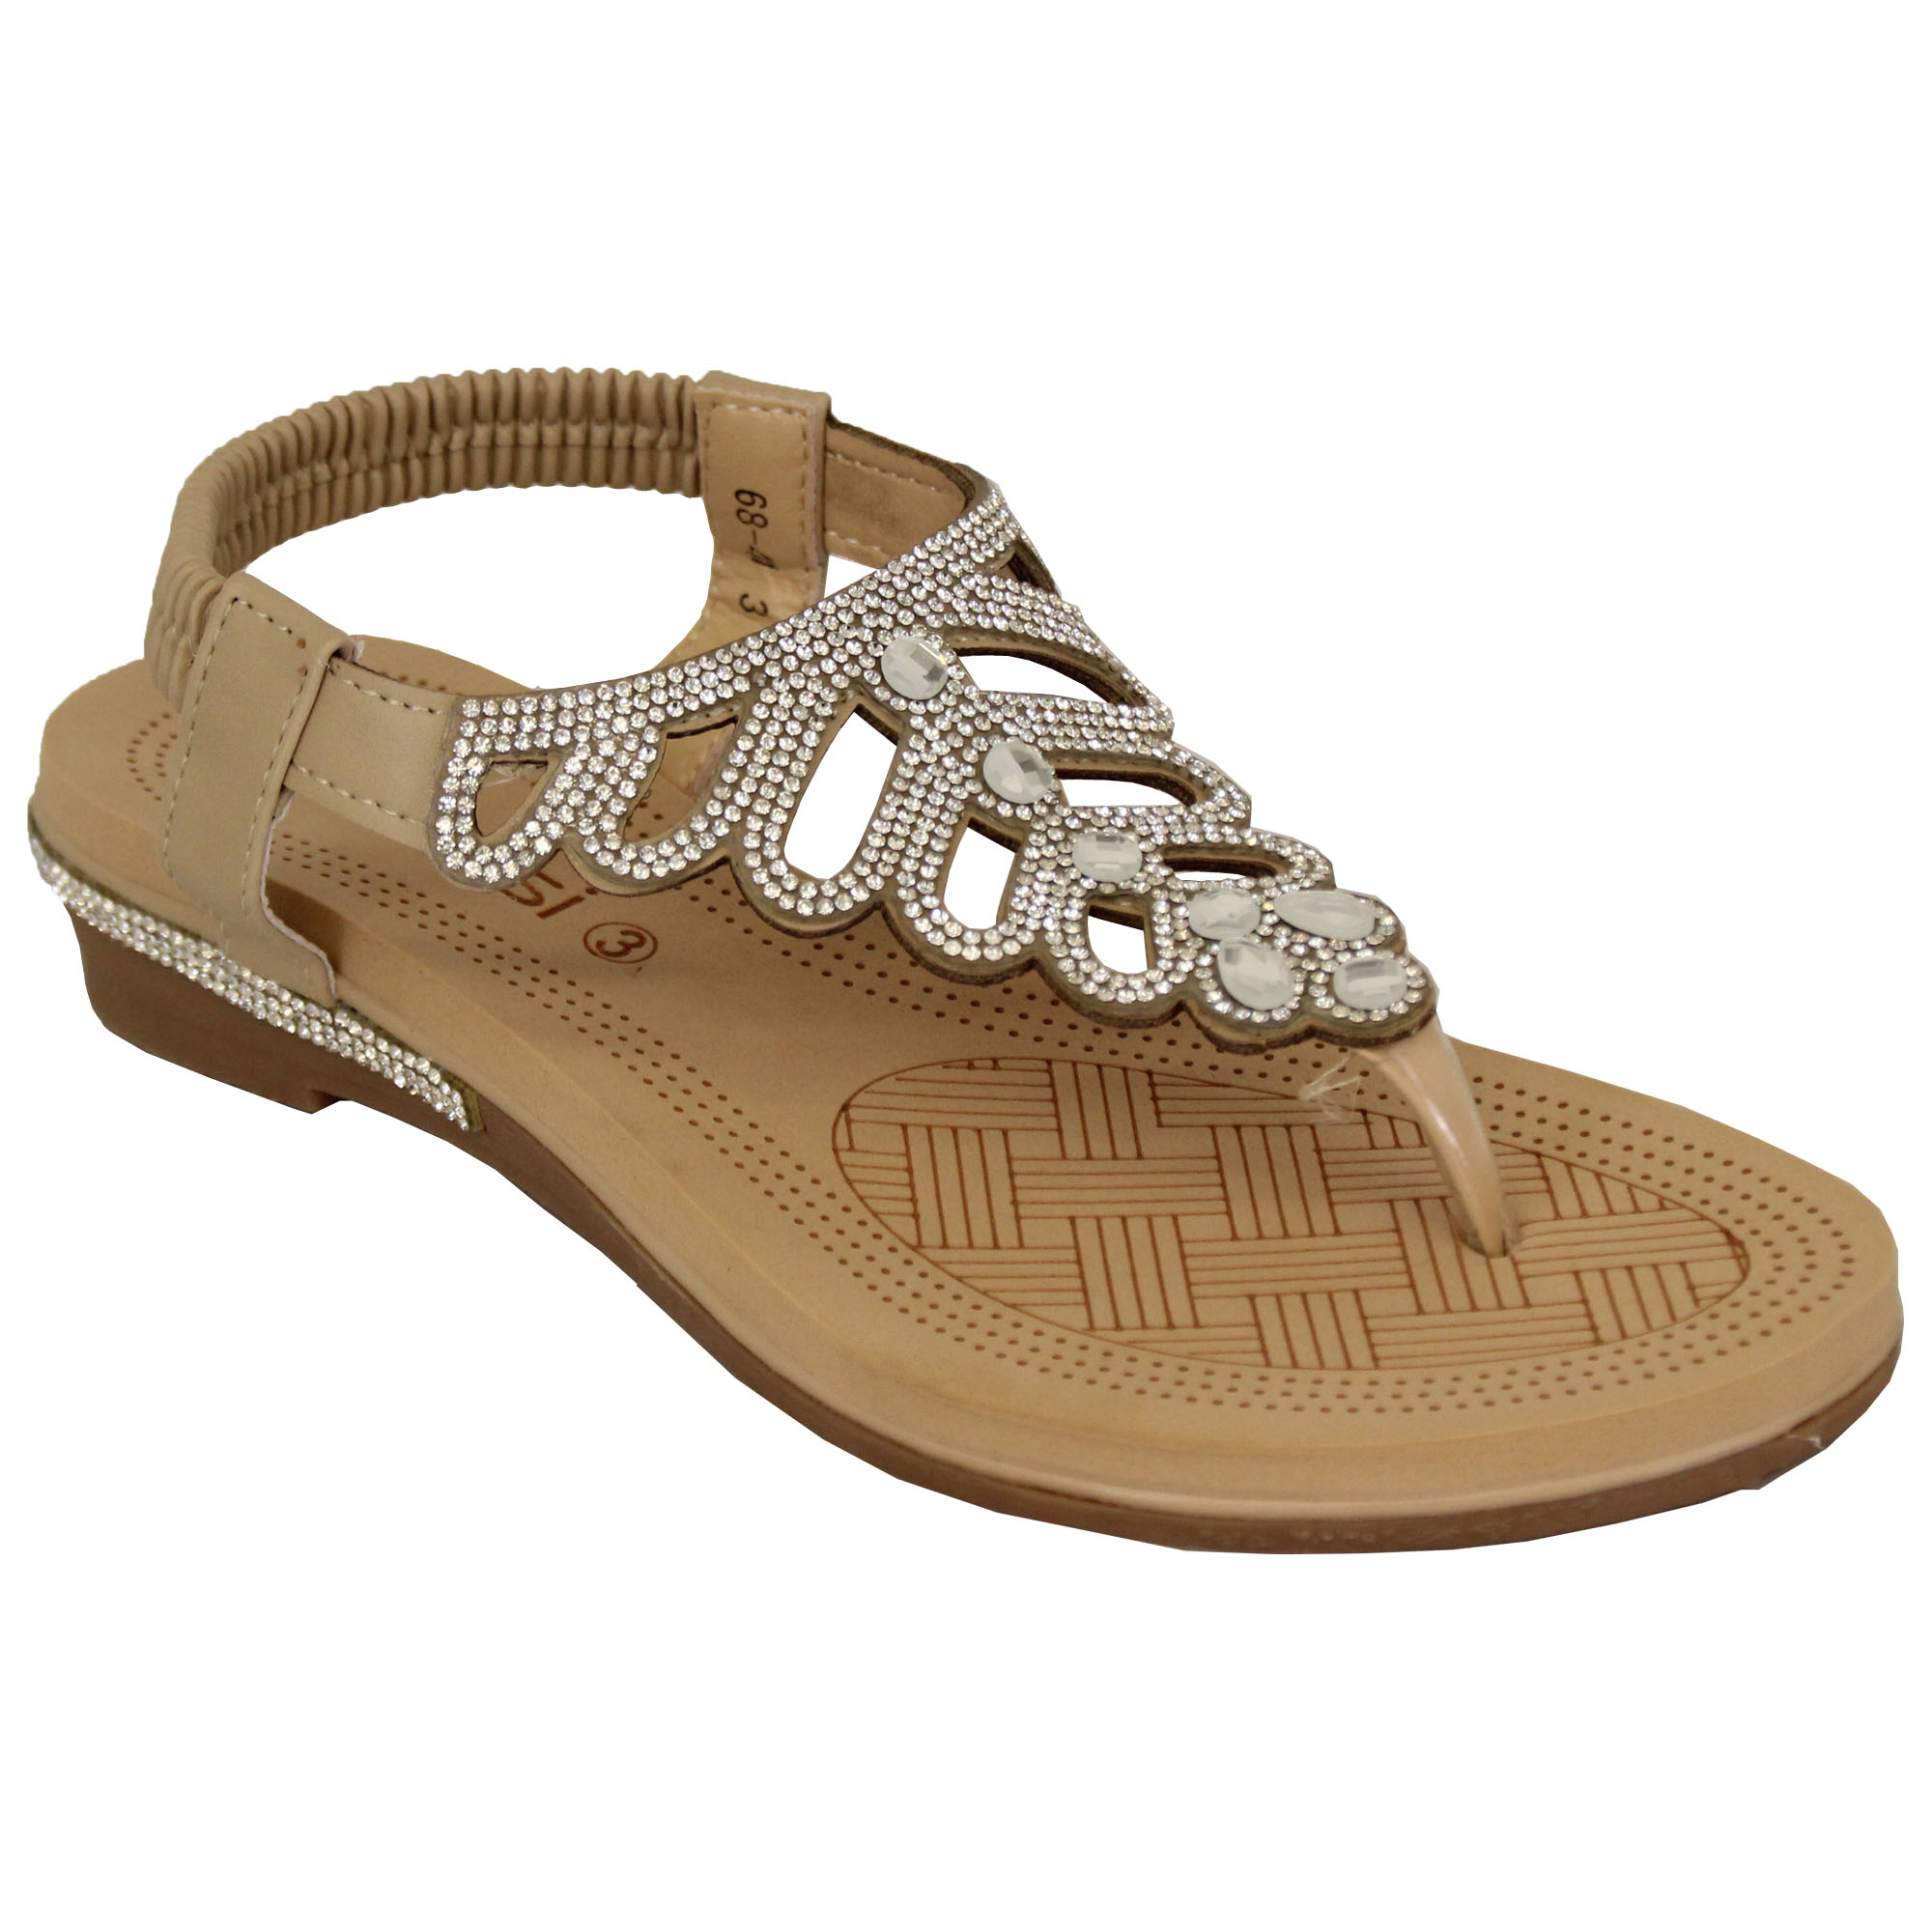 Ladies-Sandals-Kelsi-Womens-Diamante-Slip-On-Toe-Post-Shoes-Casual-Fashion-New thumbnail 2